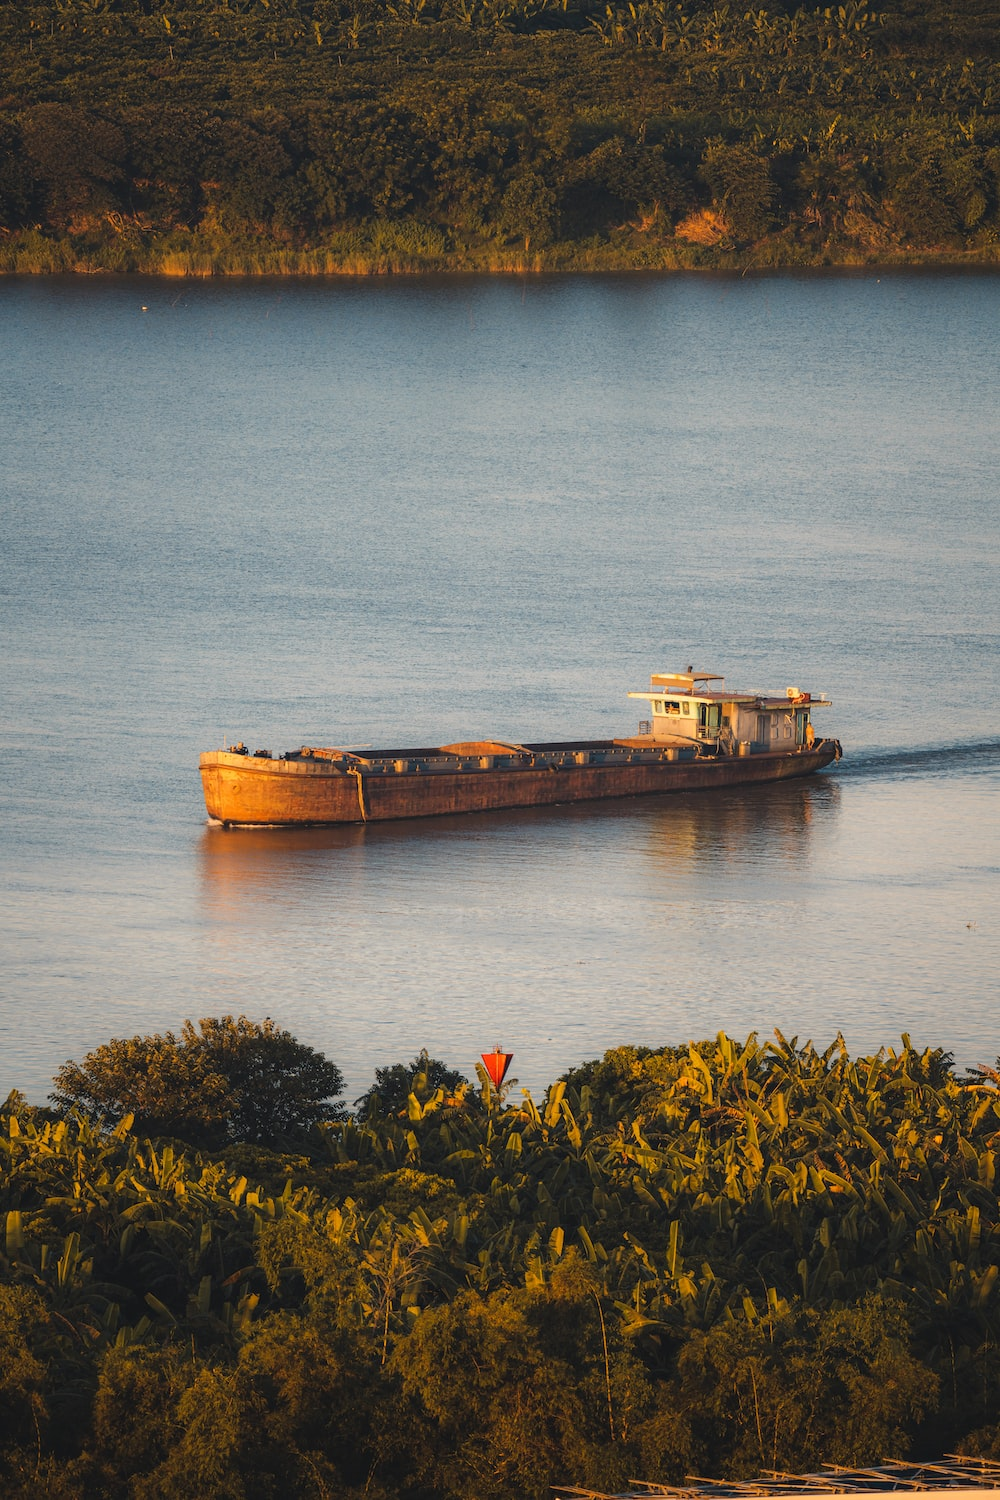 brown ship on body of water during daytime